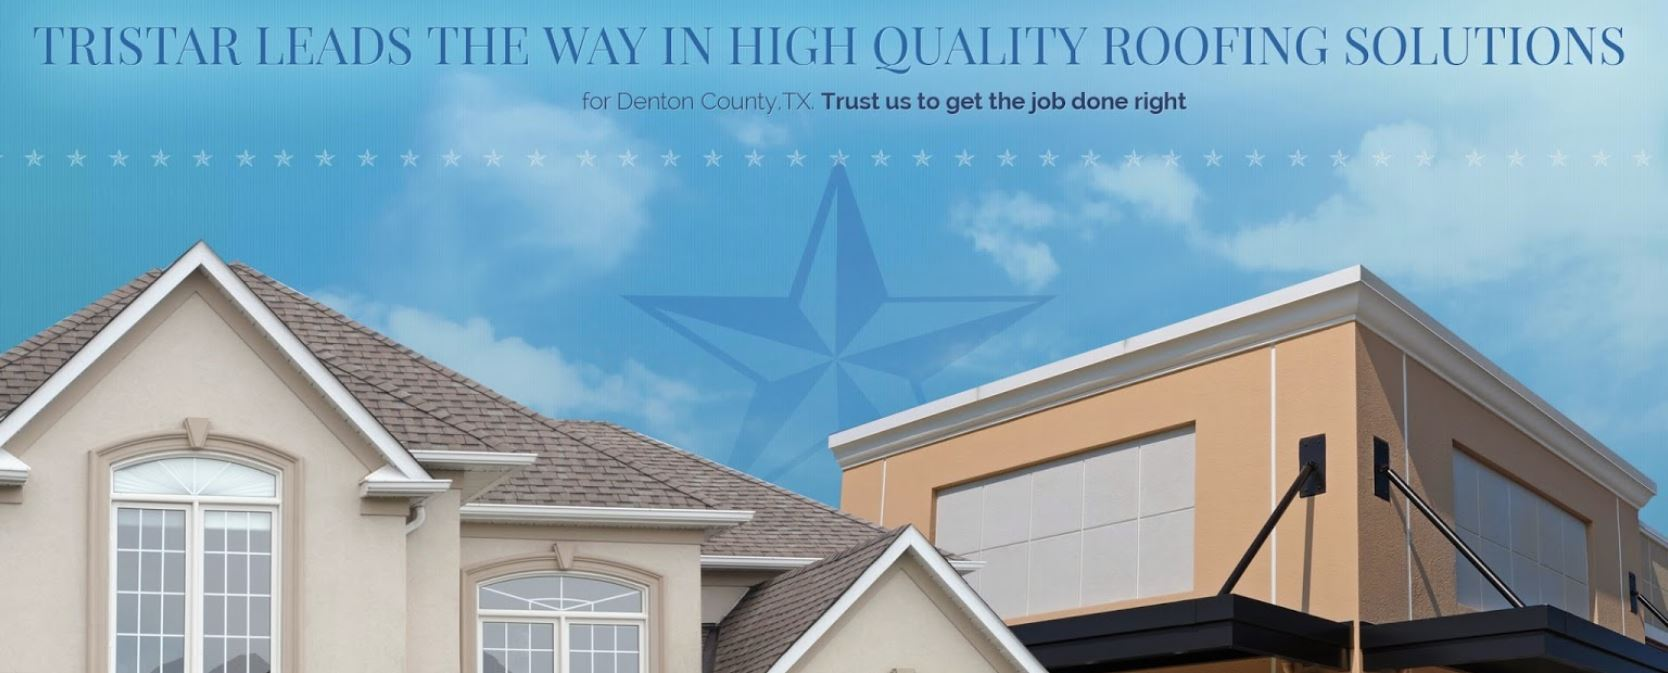 TriStar Quality Roofing reviews | Damage Restoration at 2126 JAMES STREET DENTON - Denton TX